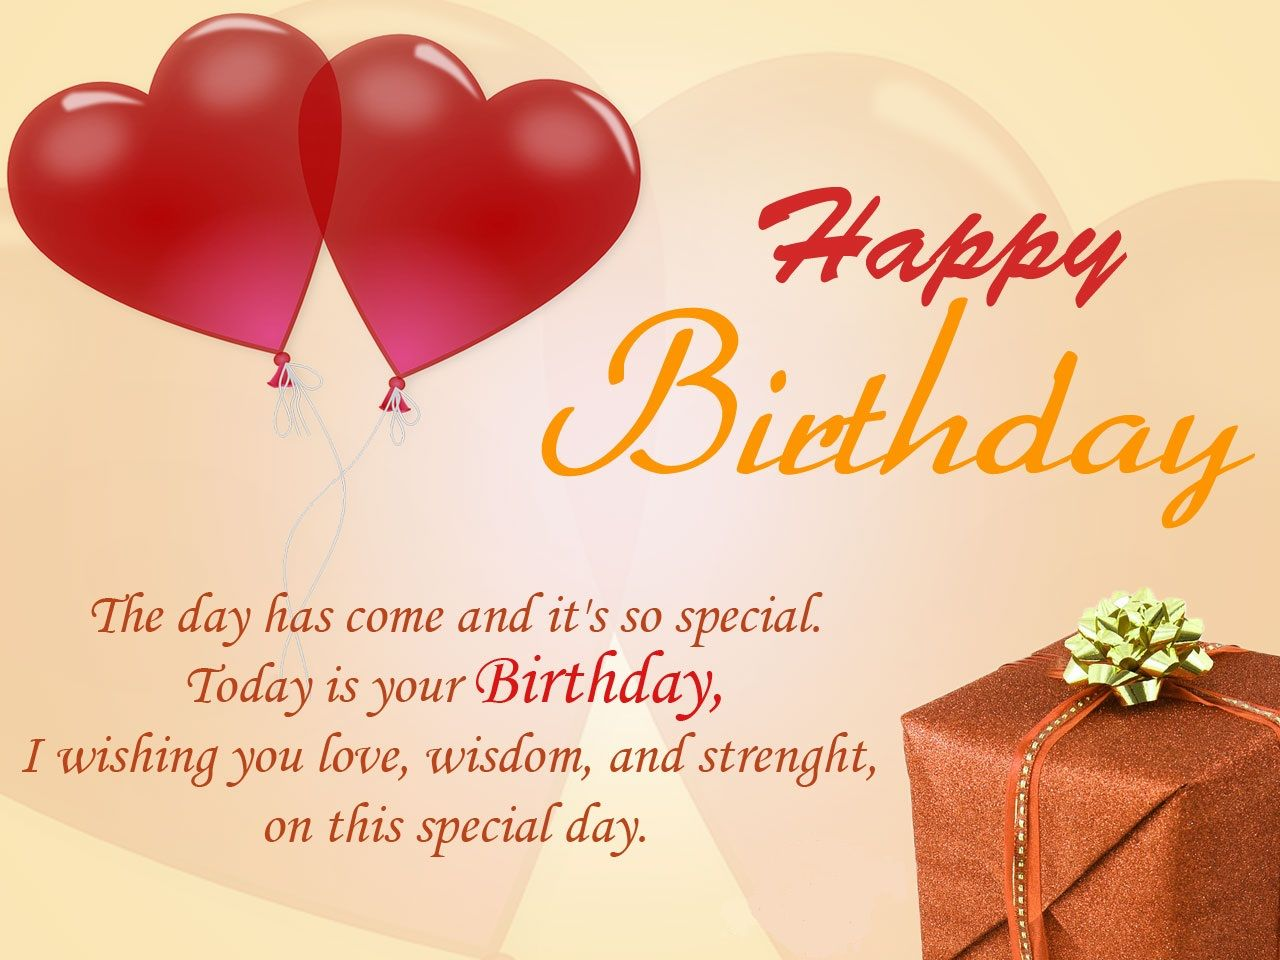 Happy Birthday Wishes Quotes For Husband The Day Has Come And It S